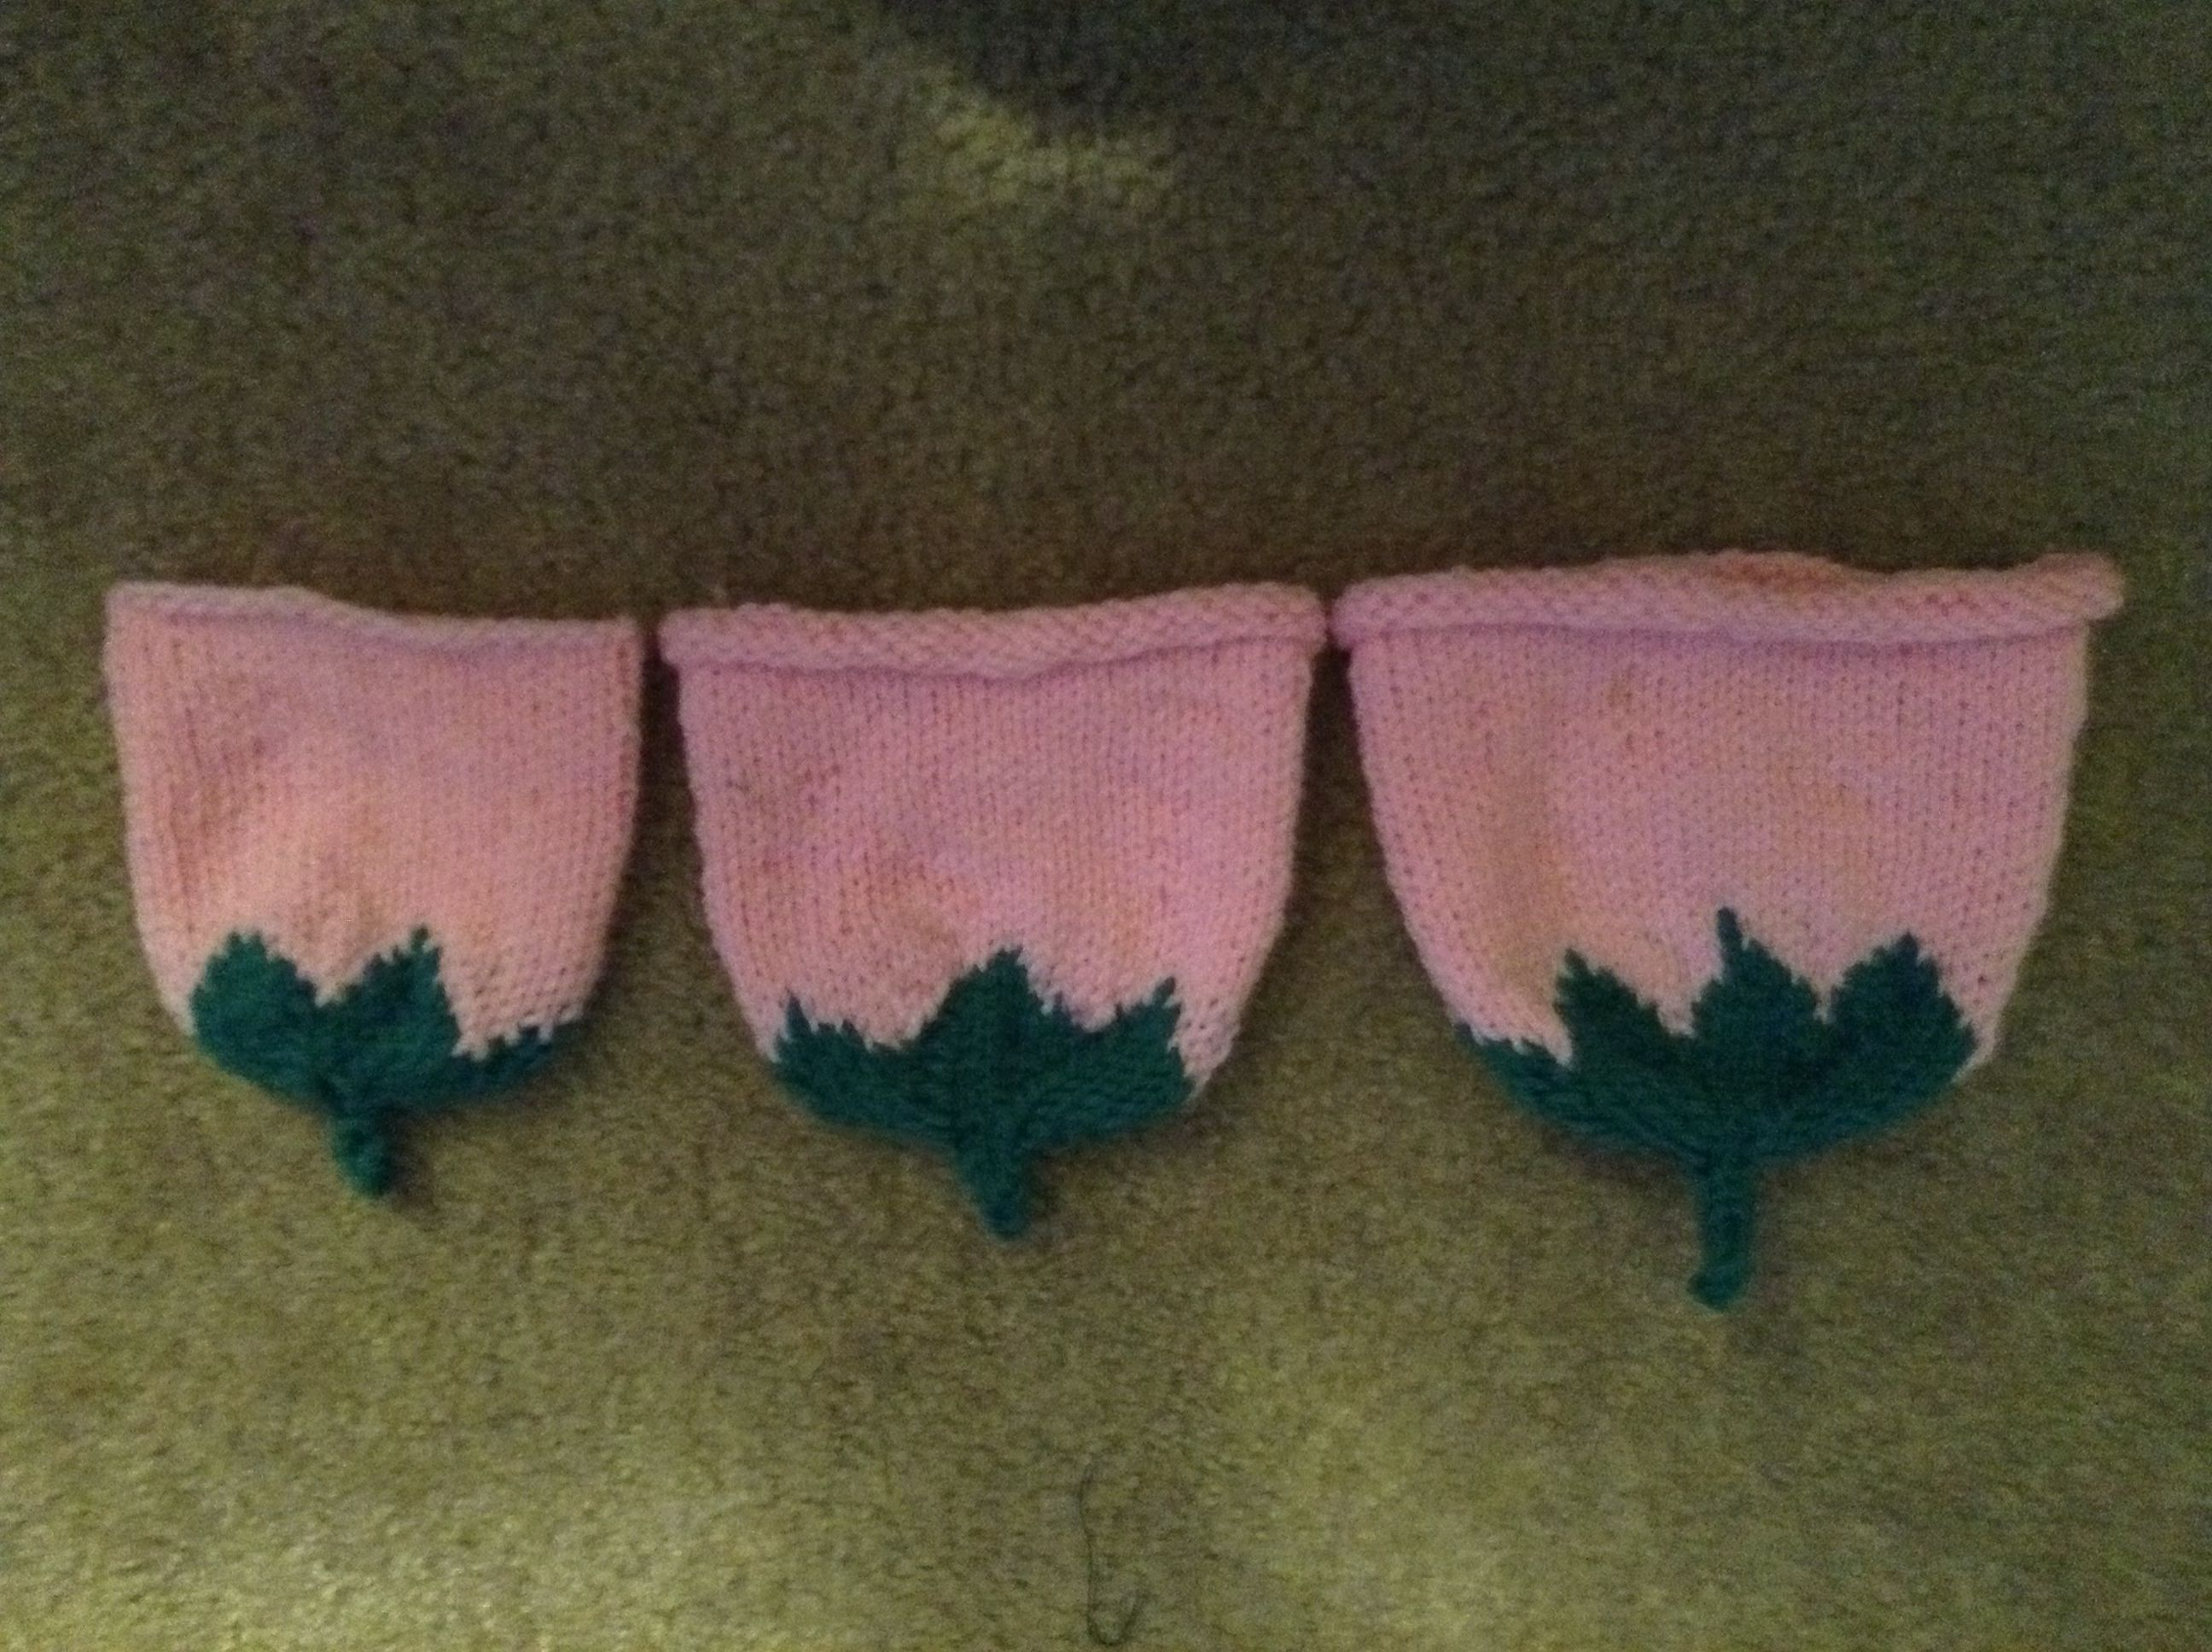 Don't know why this is upside down!! 3 sizes baby hats ---- from preemie sizes to full term